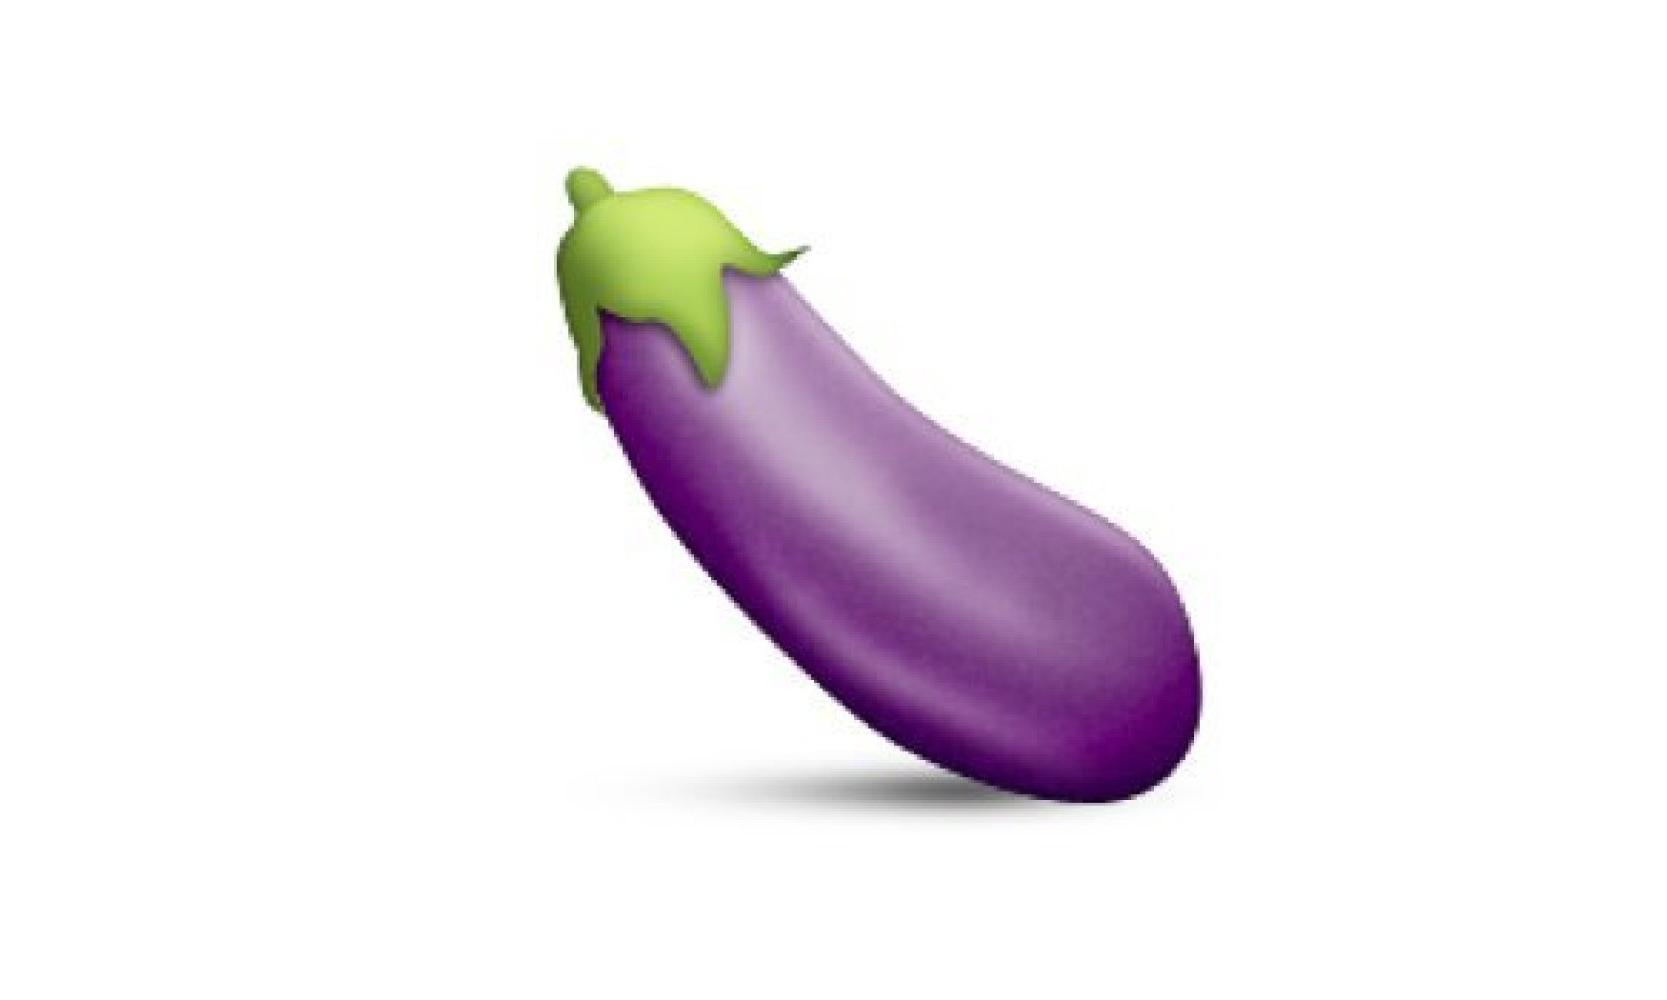 instagram ban on emoji has sexters searching for fruity